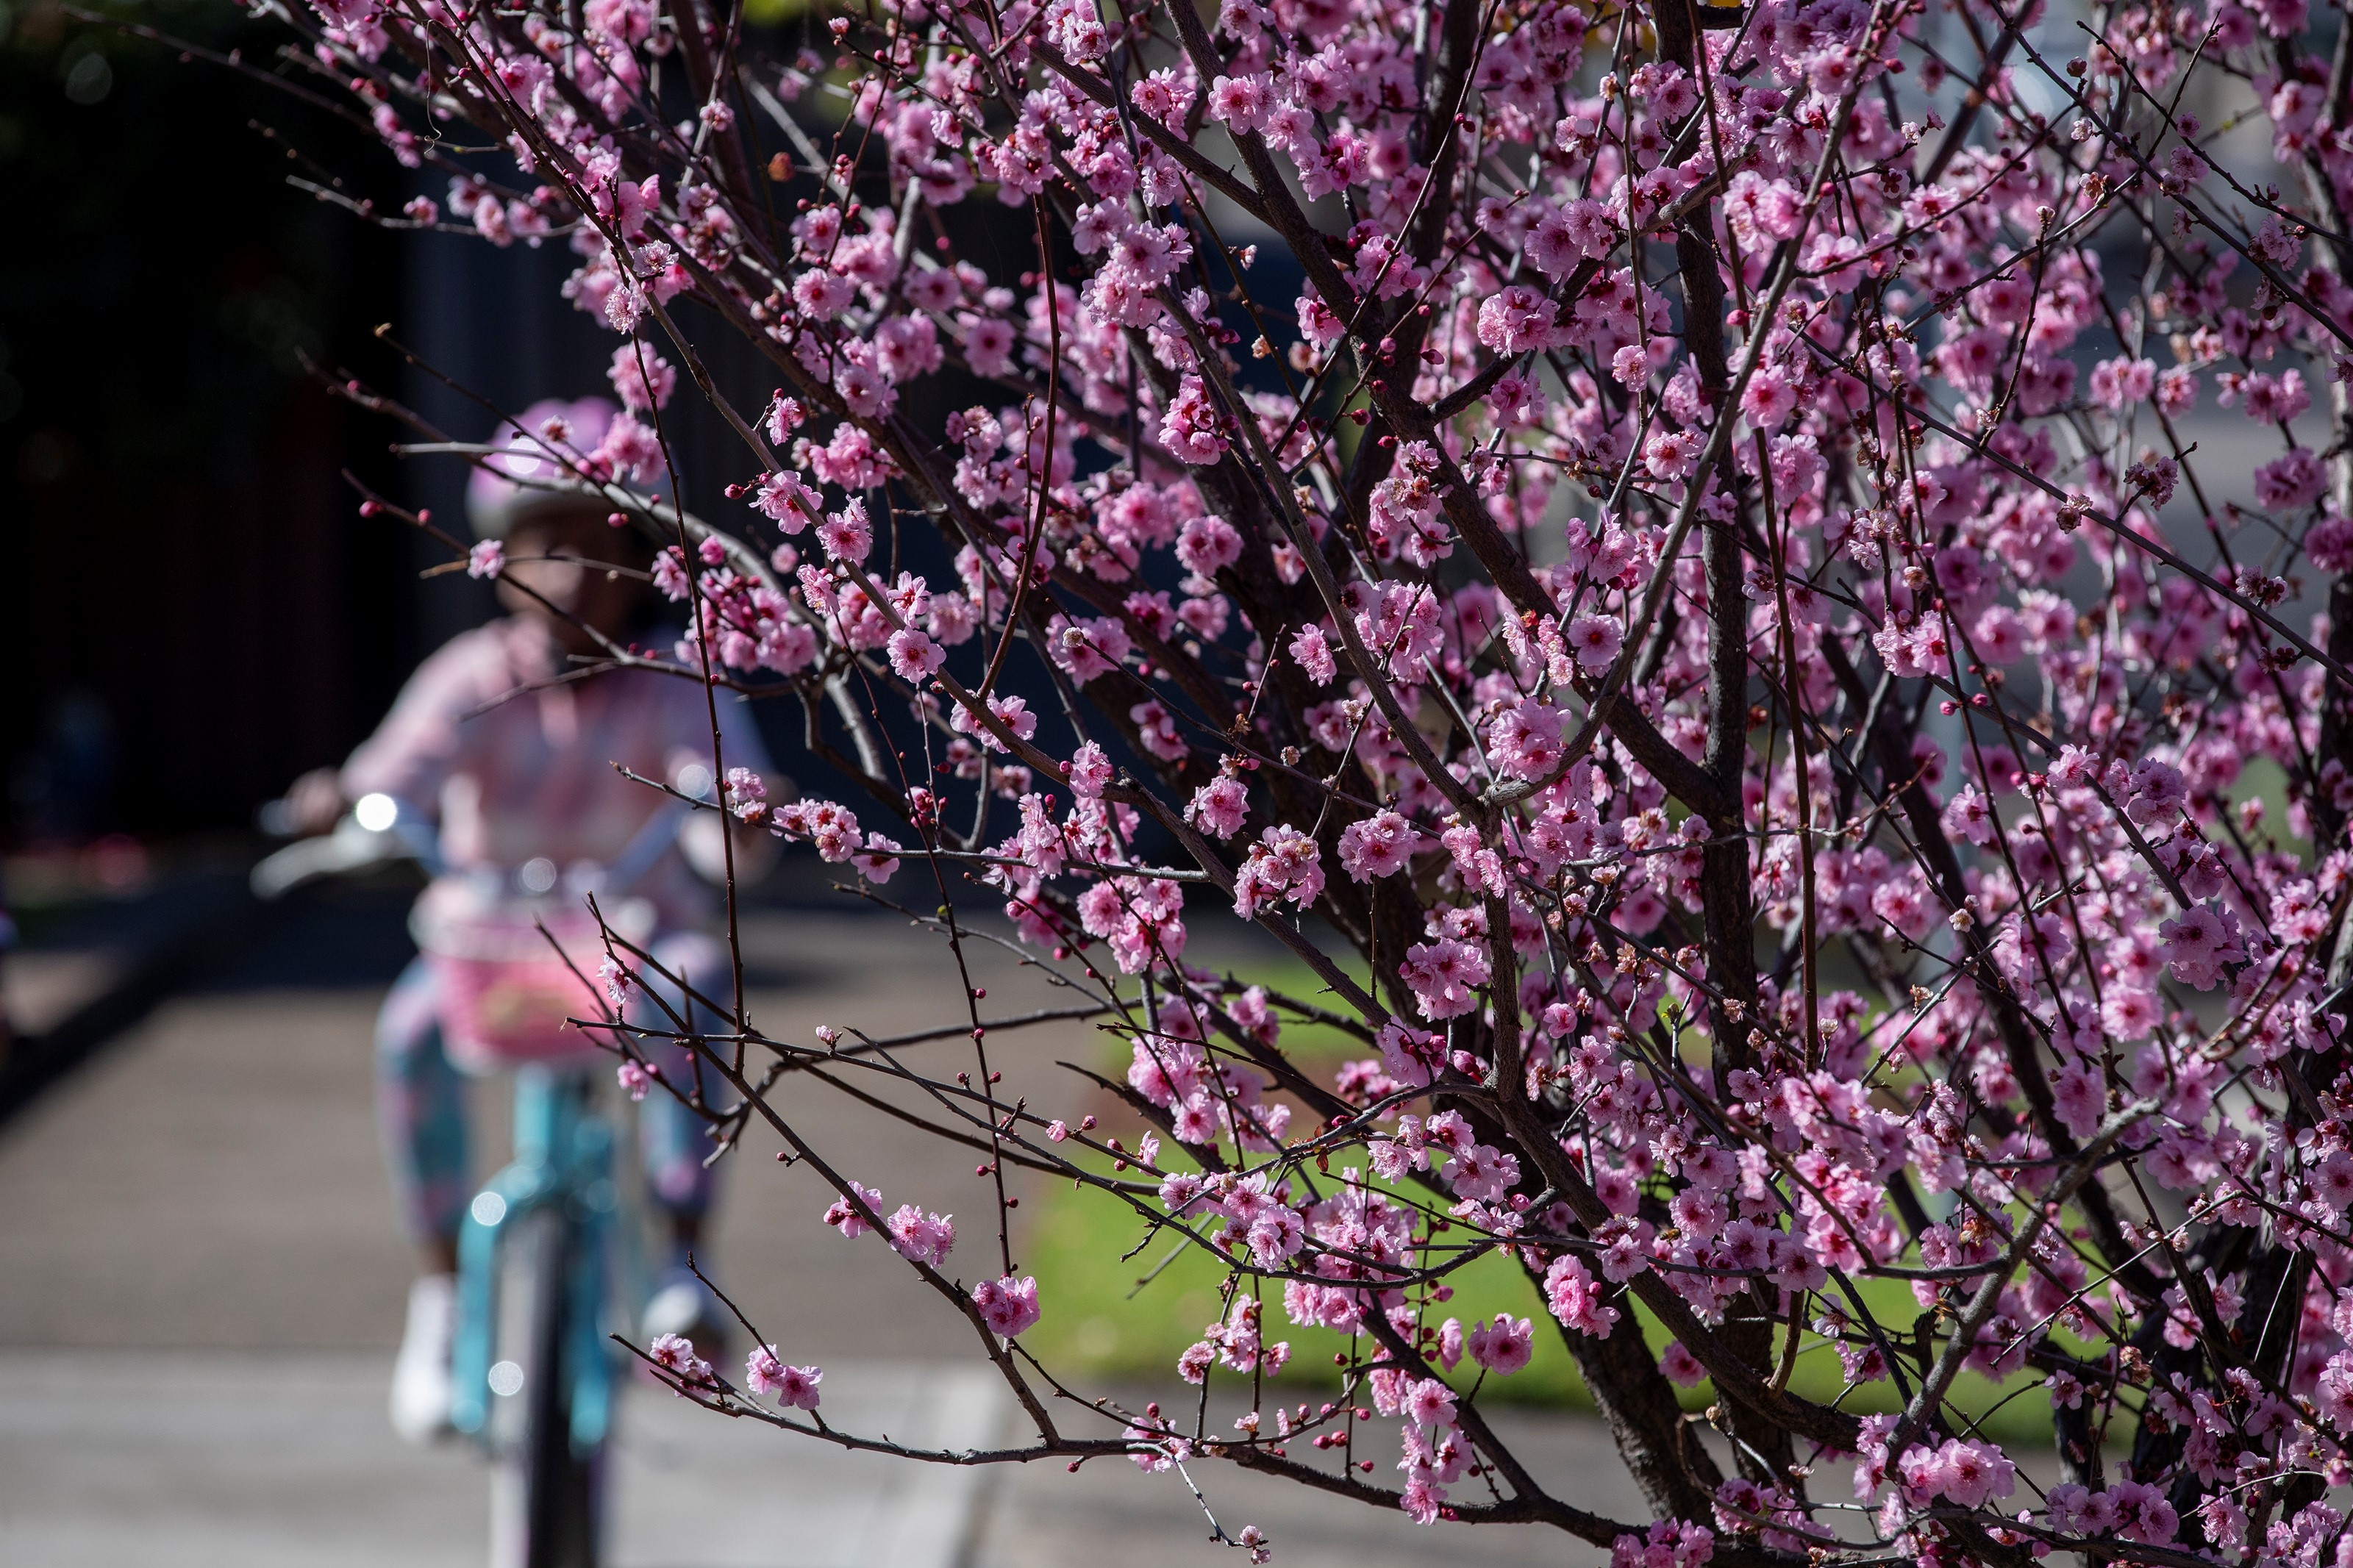 A girl rides past a cherry tree in Sydney, Australia, on Aug. 16, 2021. Australia's state of New South Wales NSW recorded a new record high of 478 new locally acquired COVID-19 cases and eight deaths on Monday. (Photo by Bai Xuefei/Xinhua via Getty Images)